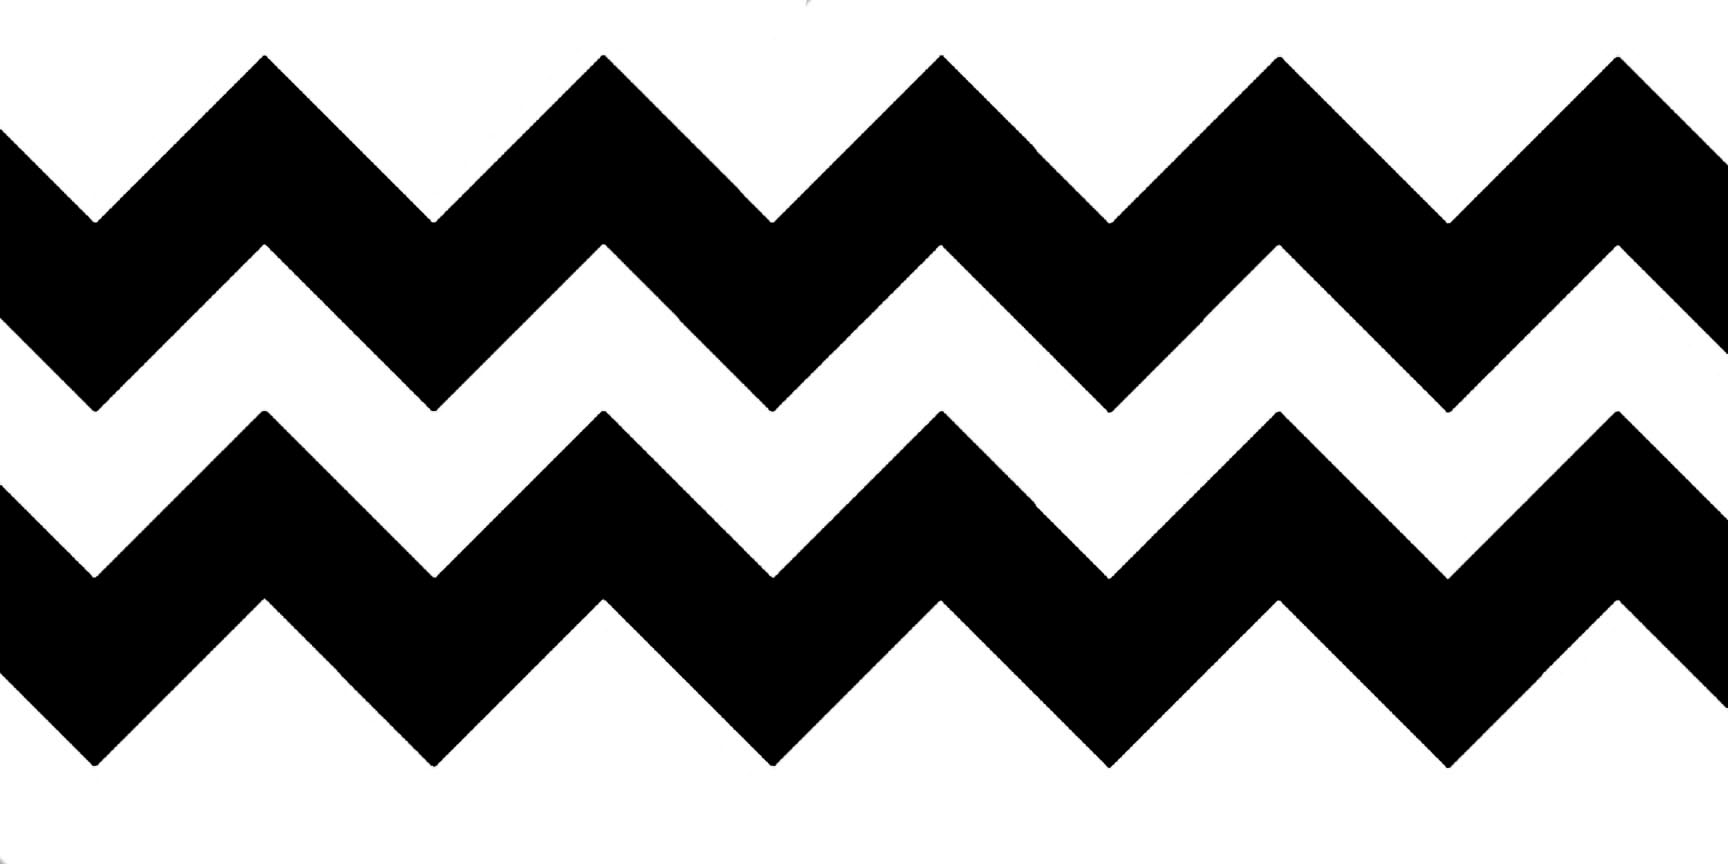 Chevron pattern. Use the printable outline for crafts, creating